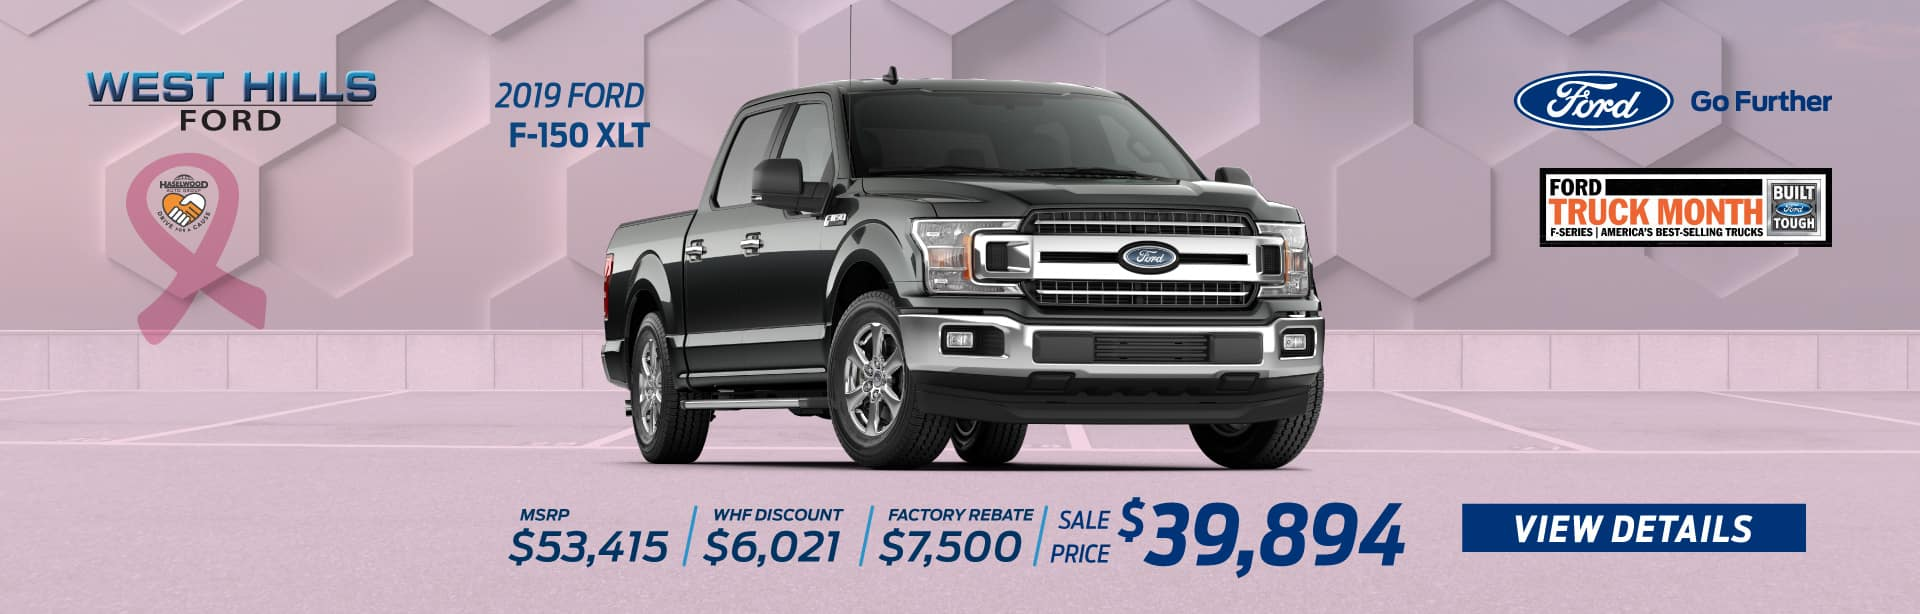 2019 Ford F-150 XLT (featured vehicle) MSRP: $53,415 WHF Discount: $6,021 Factory Rebate: $7,500 Sale Price: $39,894   *Offer valid on 2019 Ford F-150 XLT. MSRP: $53,415. WHF Discount: $6,021. Factory Rebate: $7,500. Sale Price: $39,894, not all will qualify. VIN: 1FTEW1E40KKC99437.Down payment and monthly payment may vary. Subject to credit approval. Excludes state and local taxes, tags, registration, title, insurance and dealer charges. See dealer for qualifications and complete details. A negotiable dealer documentary service fee of up to $150 may be added to the sale price or capitalized cost. Offer expires 10/31/19.